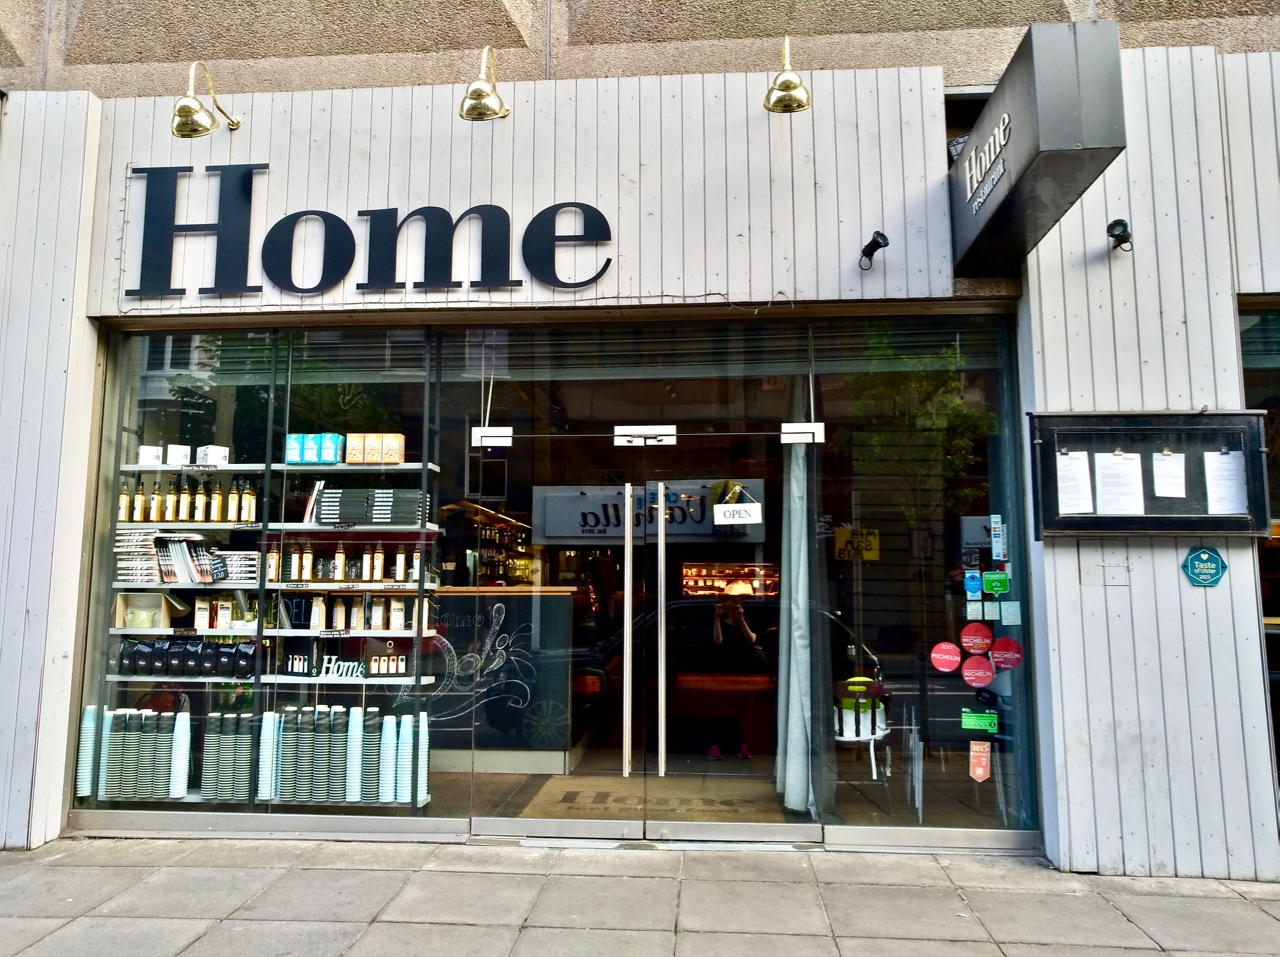 Home: A restaurant with vegan options in Belfast (1)